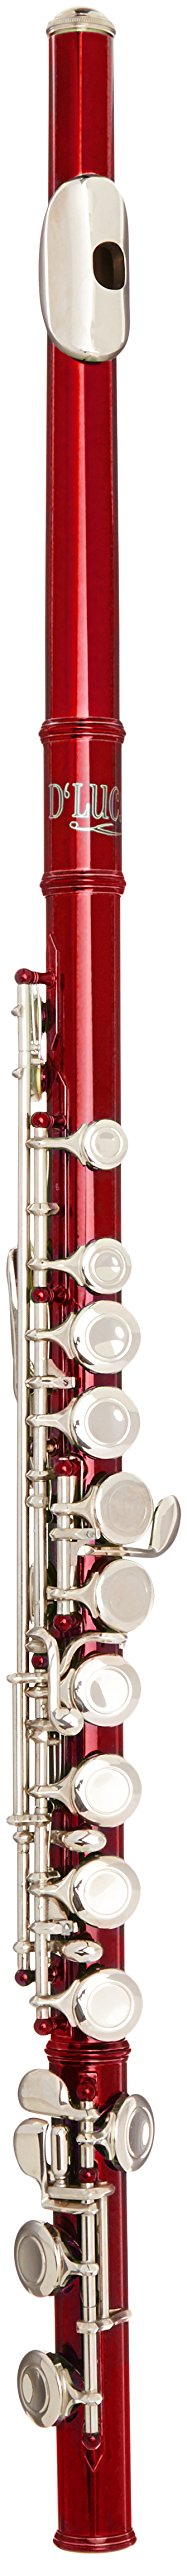 D'Luca 400RD 400 Series 16 Closed Hole C Flute with Offset G and Split E Mechanism, Case, Cleaning Kit, Red by D'Luca